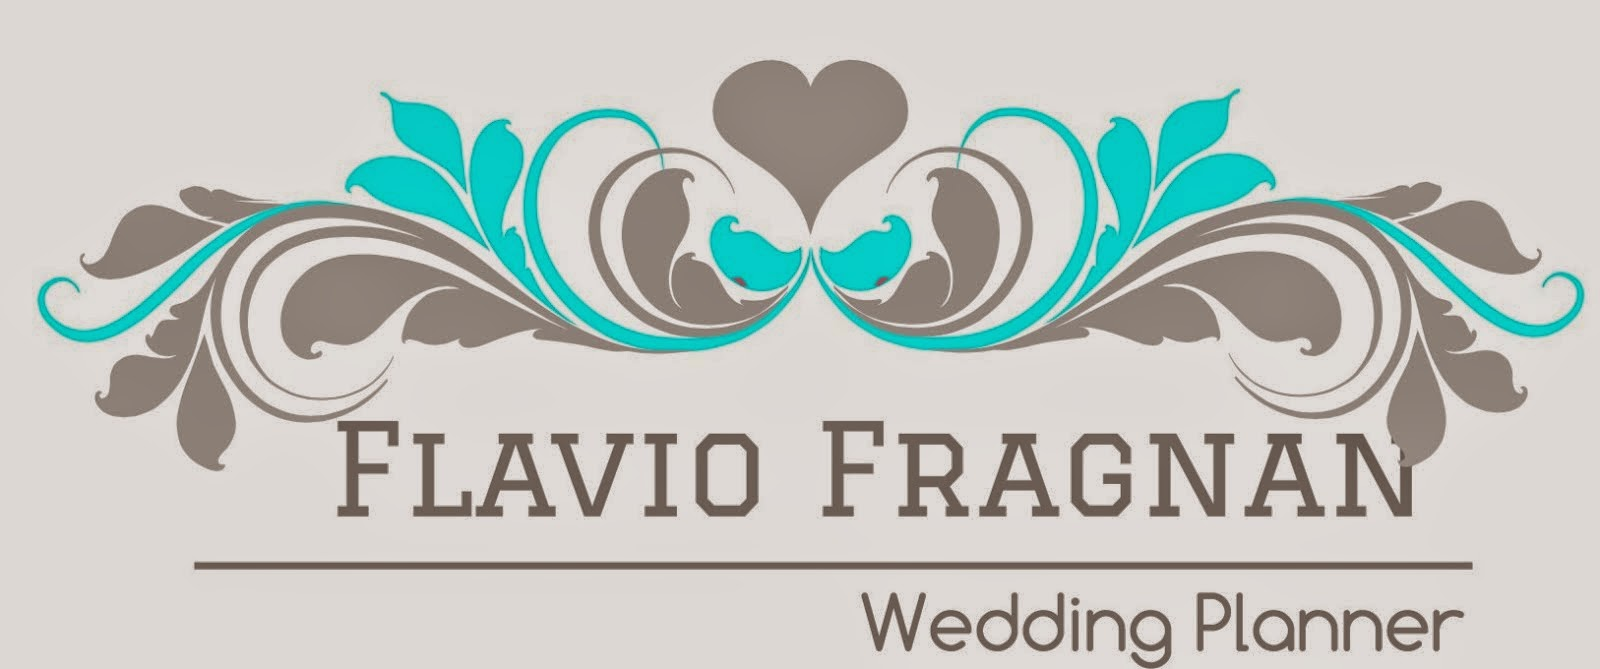 Flavio Fragnan Wedding Planner